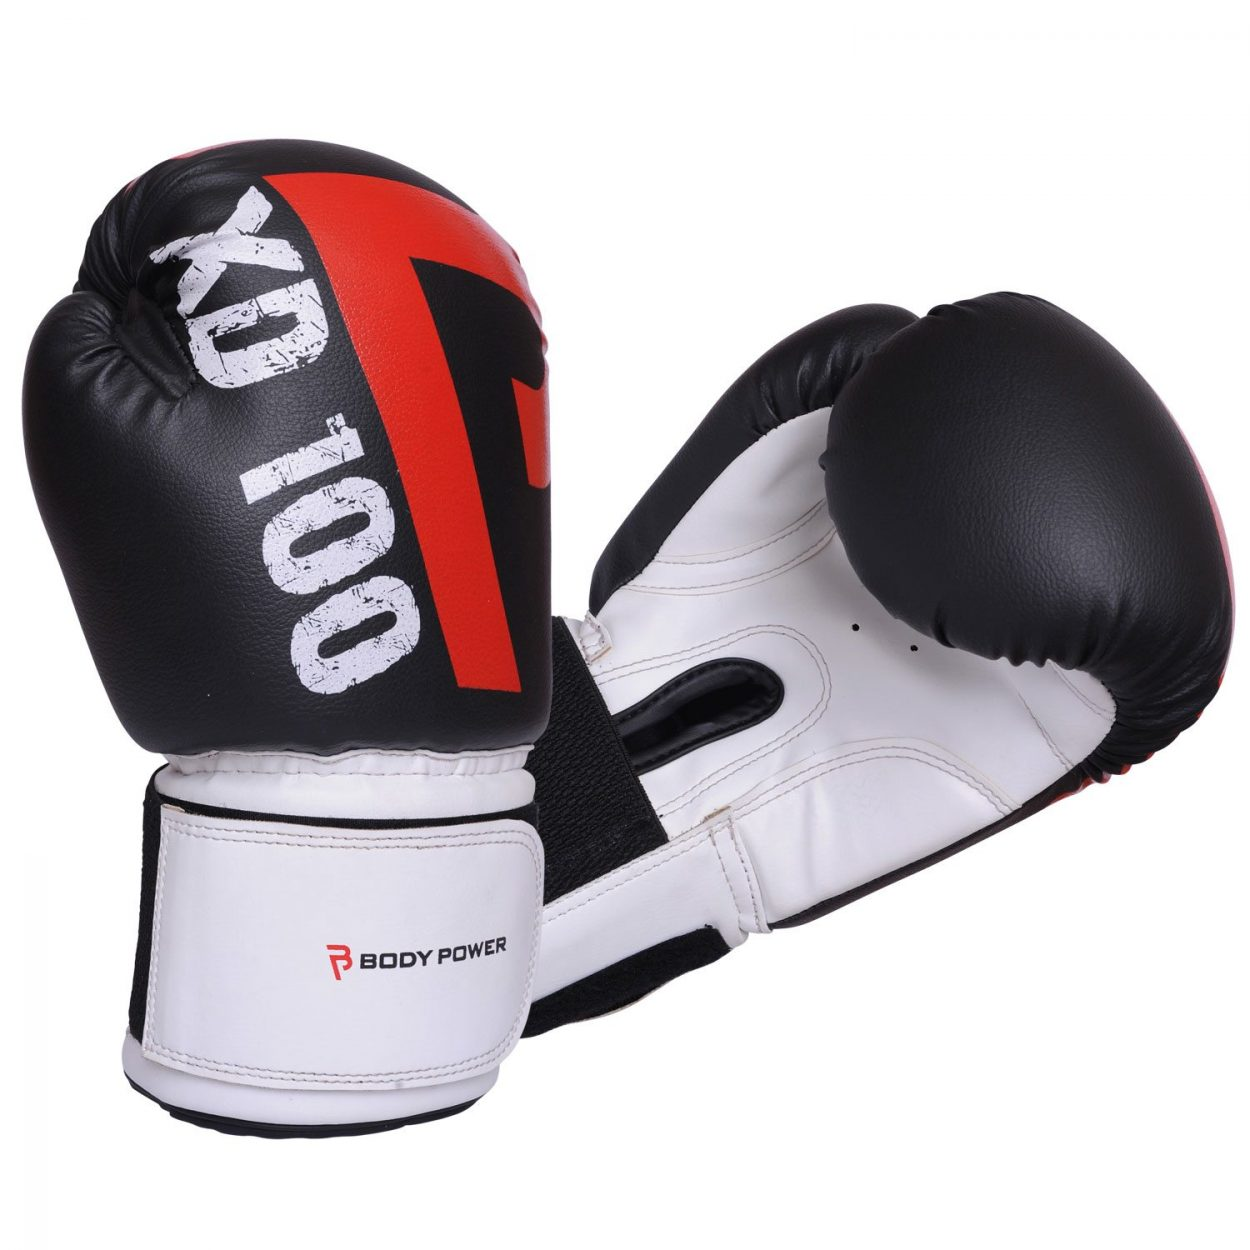 Xd Fitness Equipment: Body Power XD100 PU Sparring Gloves